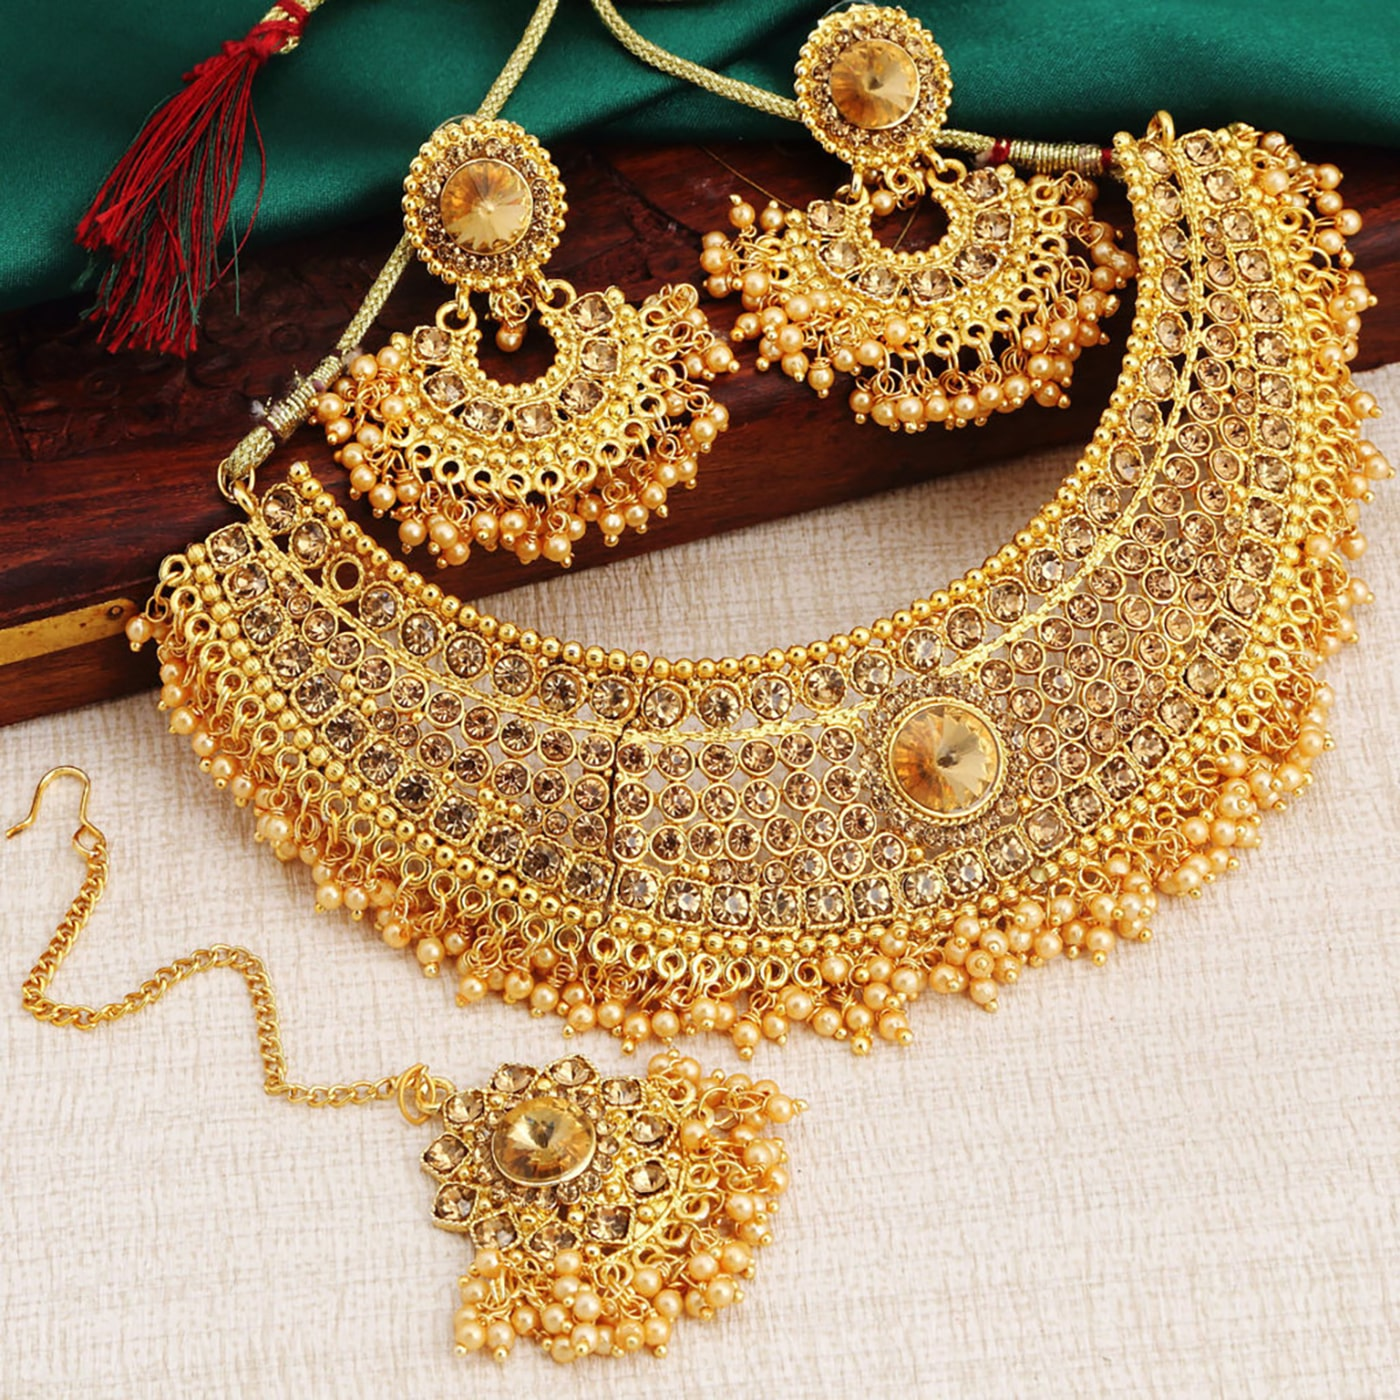 Womens Trendz Handmade Jewellery Combo Pack of Two Traditional Ethnic and Antique Gold Plated Necklace and earrings Set for Women and Girls